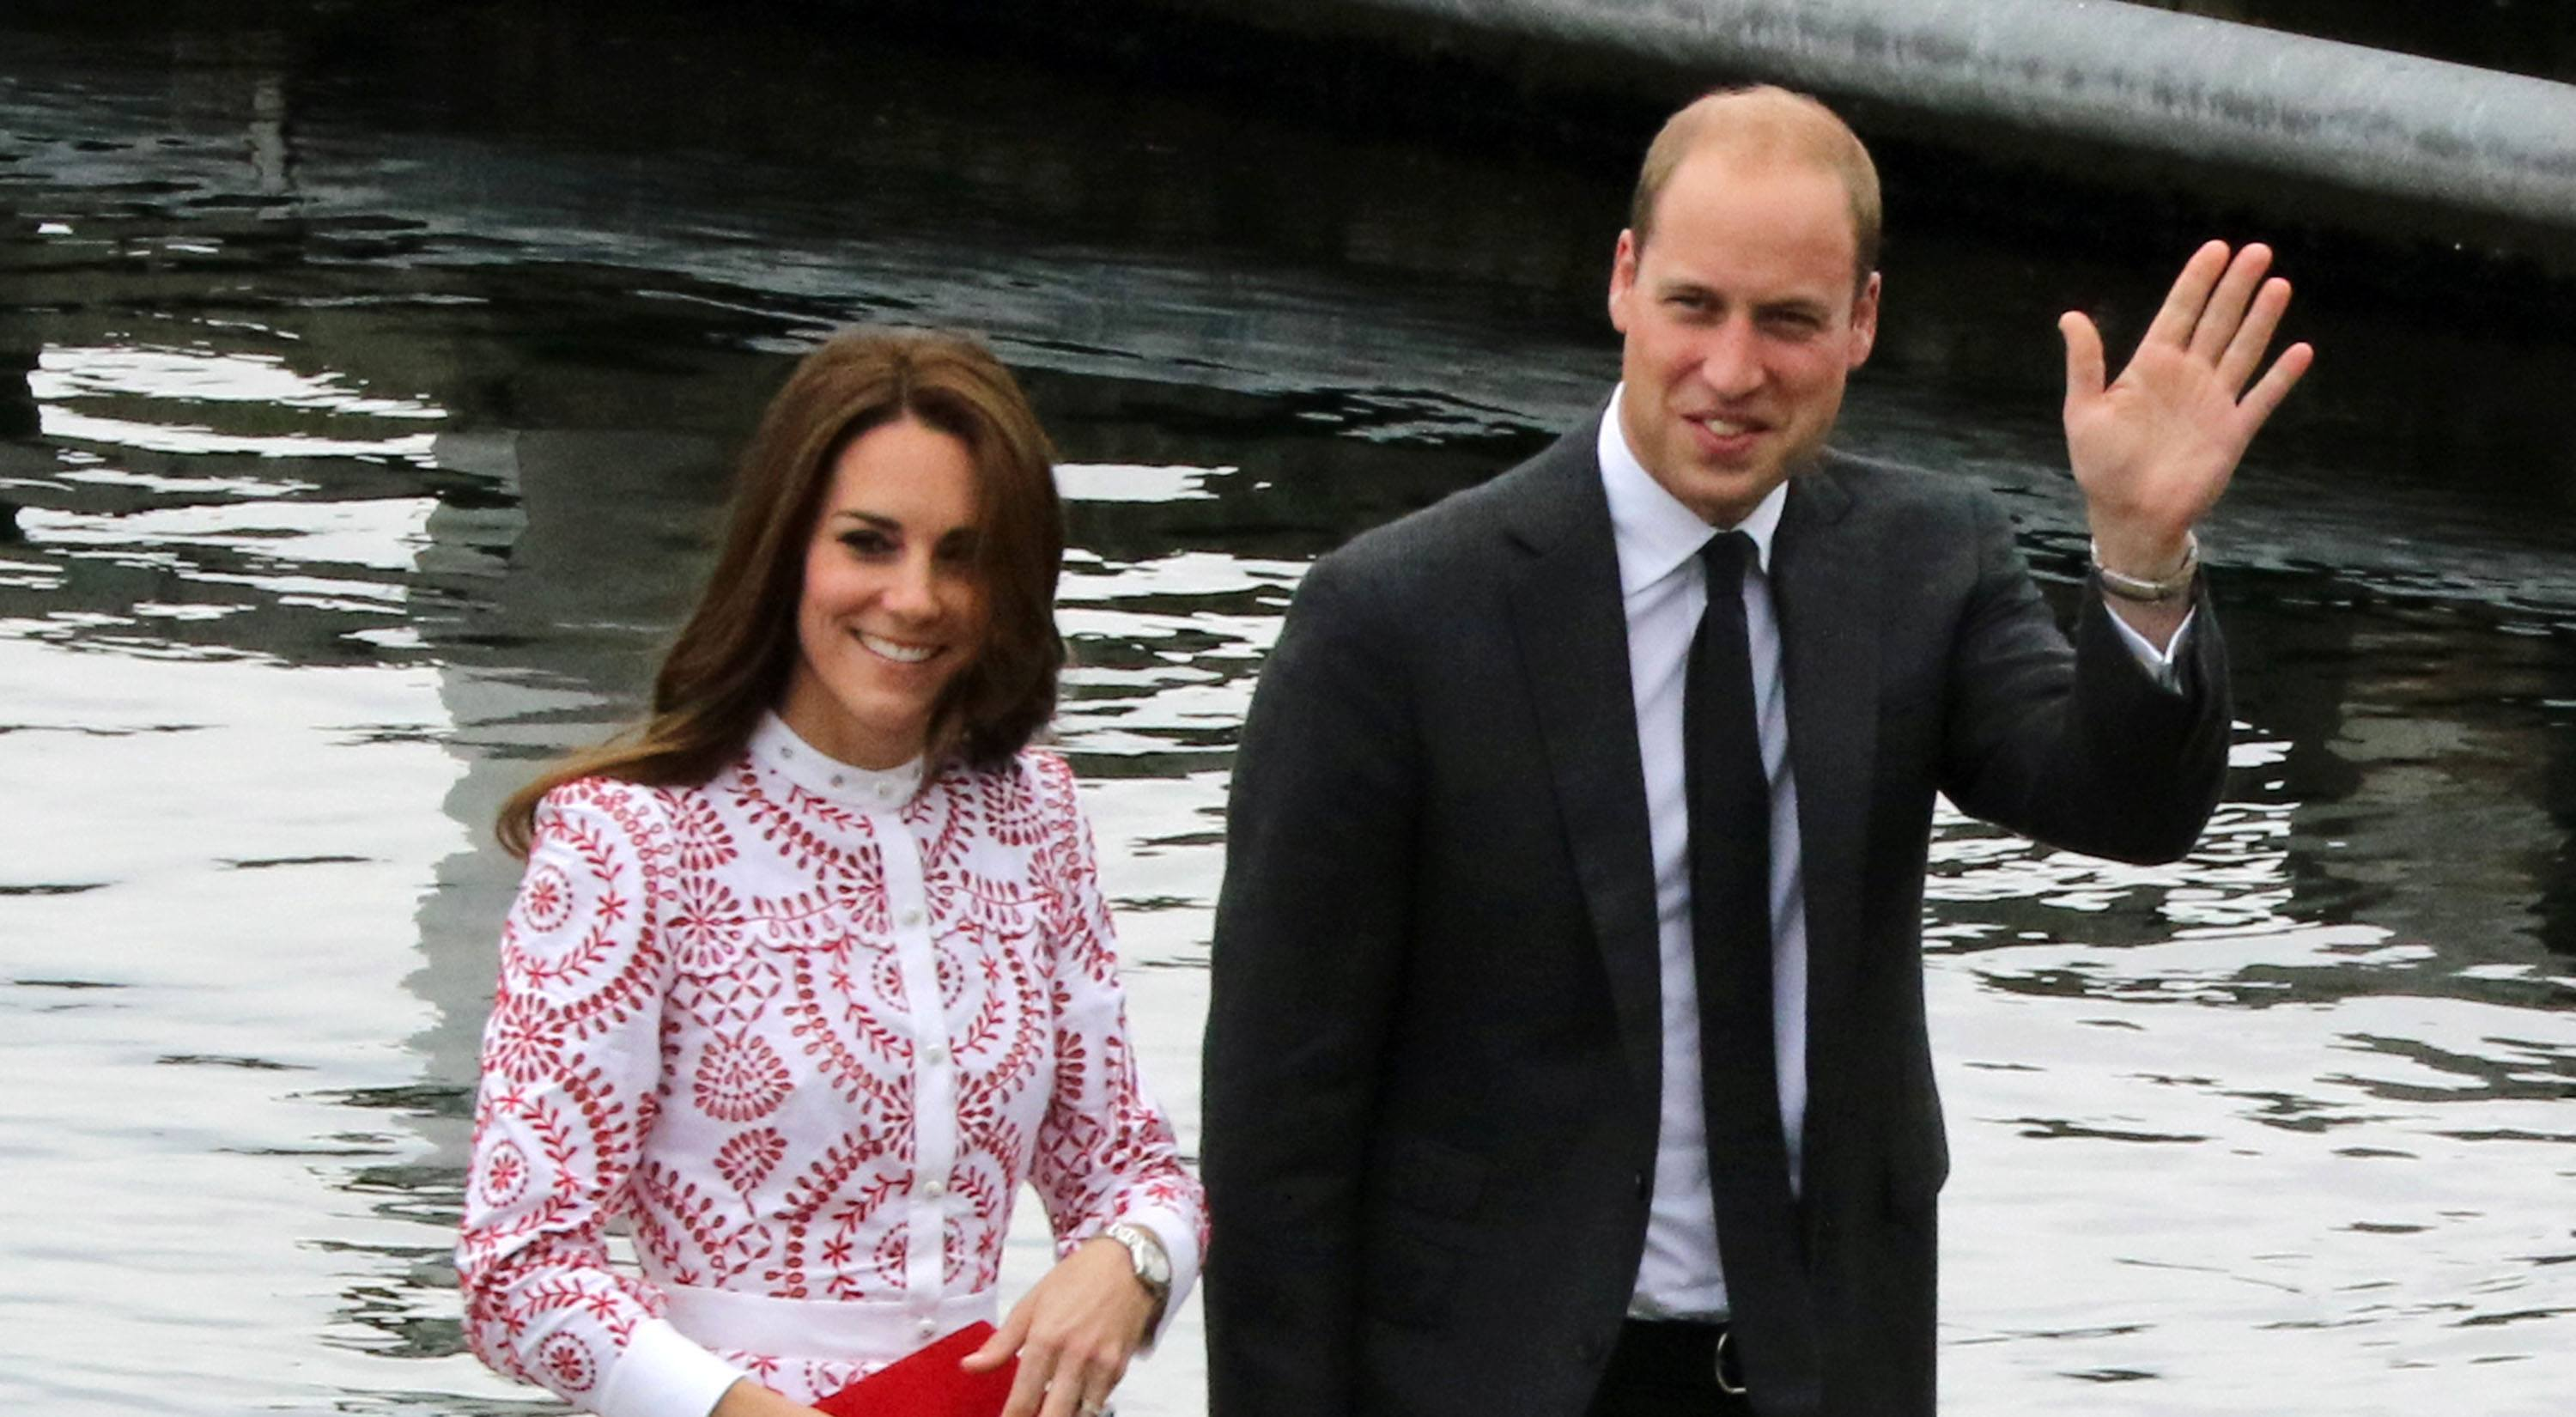 Prince william and catherine duchess of cambridge arriving in vancouver lindsay barker daily hive feature